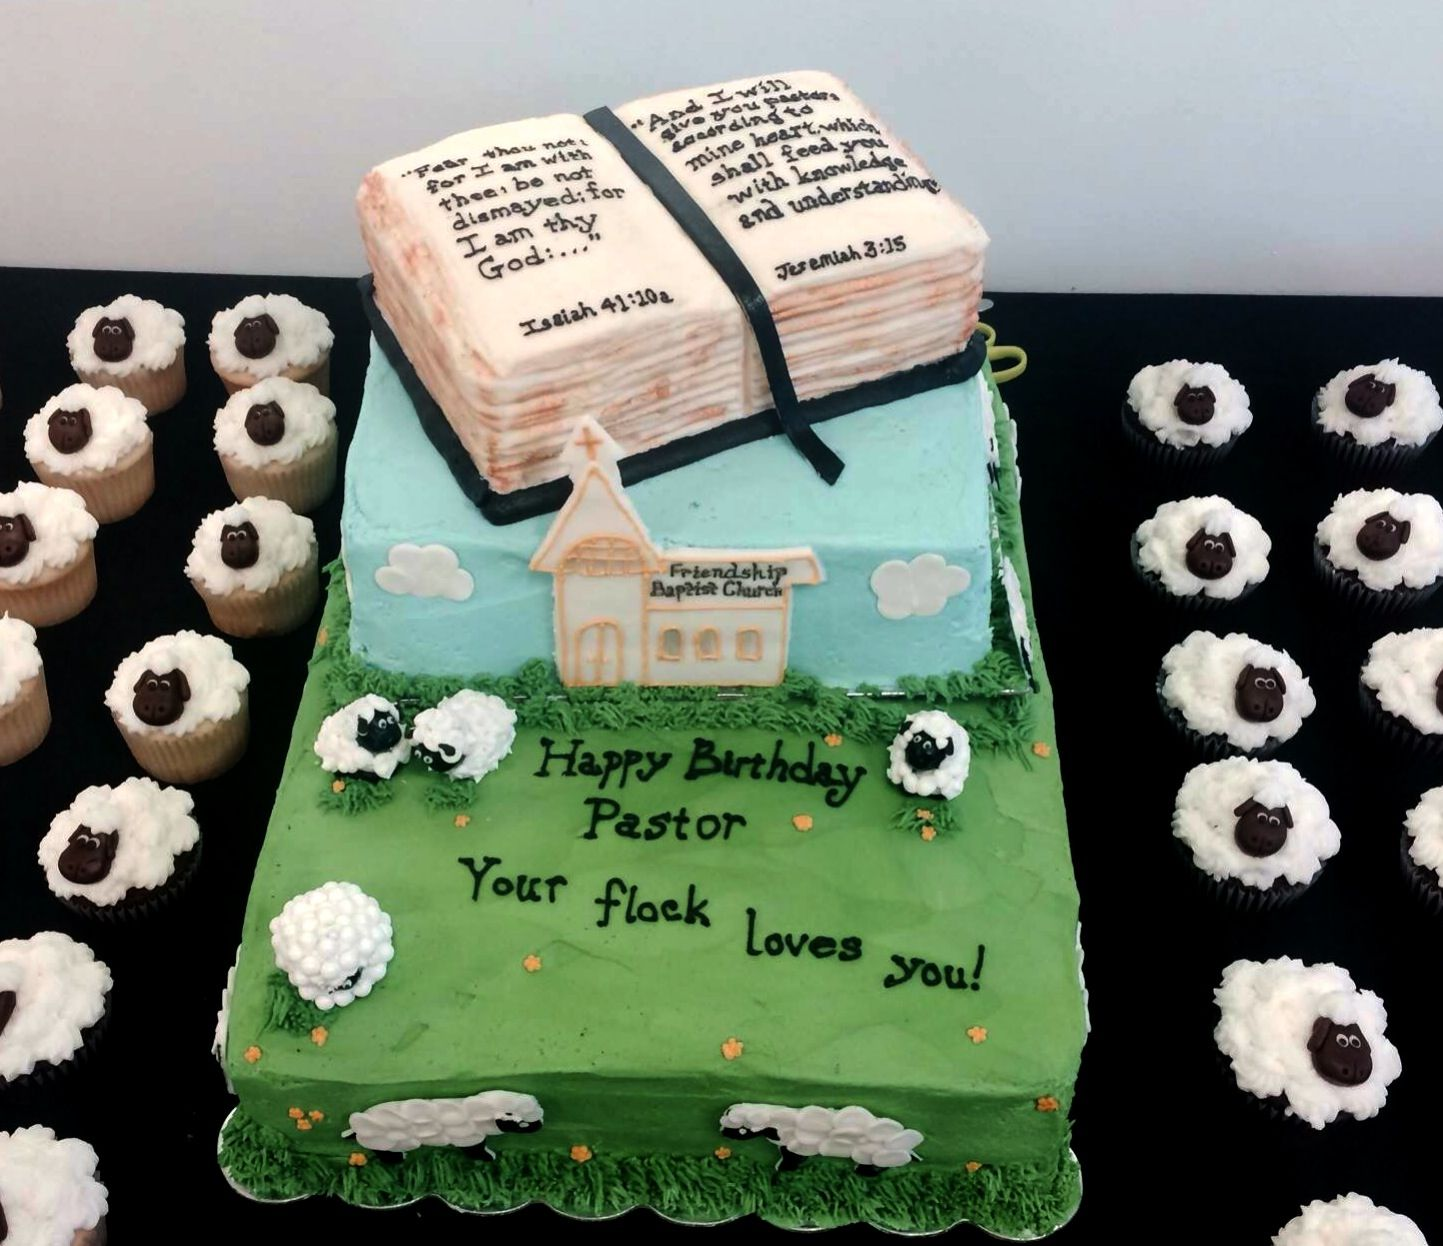 Pastors Birthday Cake Your Flock Loves You Sheep Bible Cake All